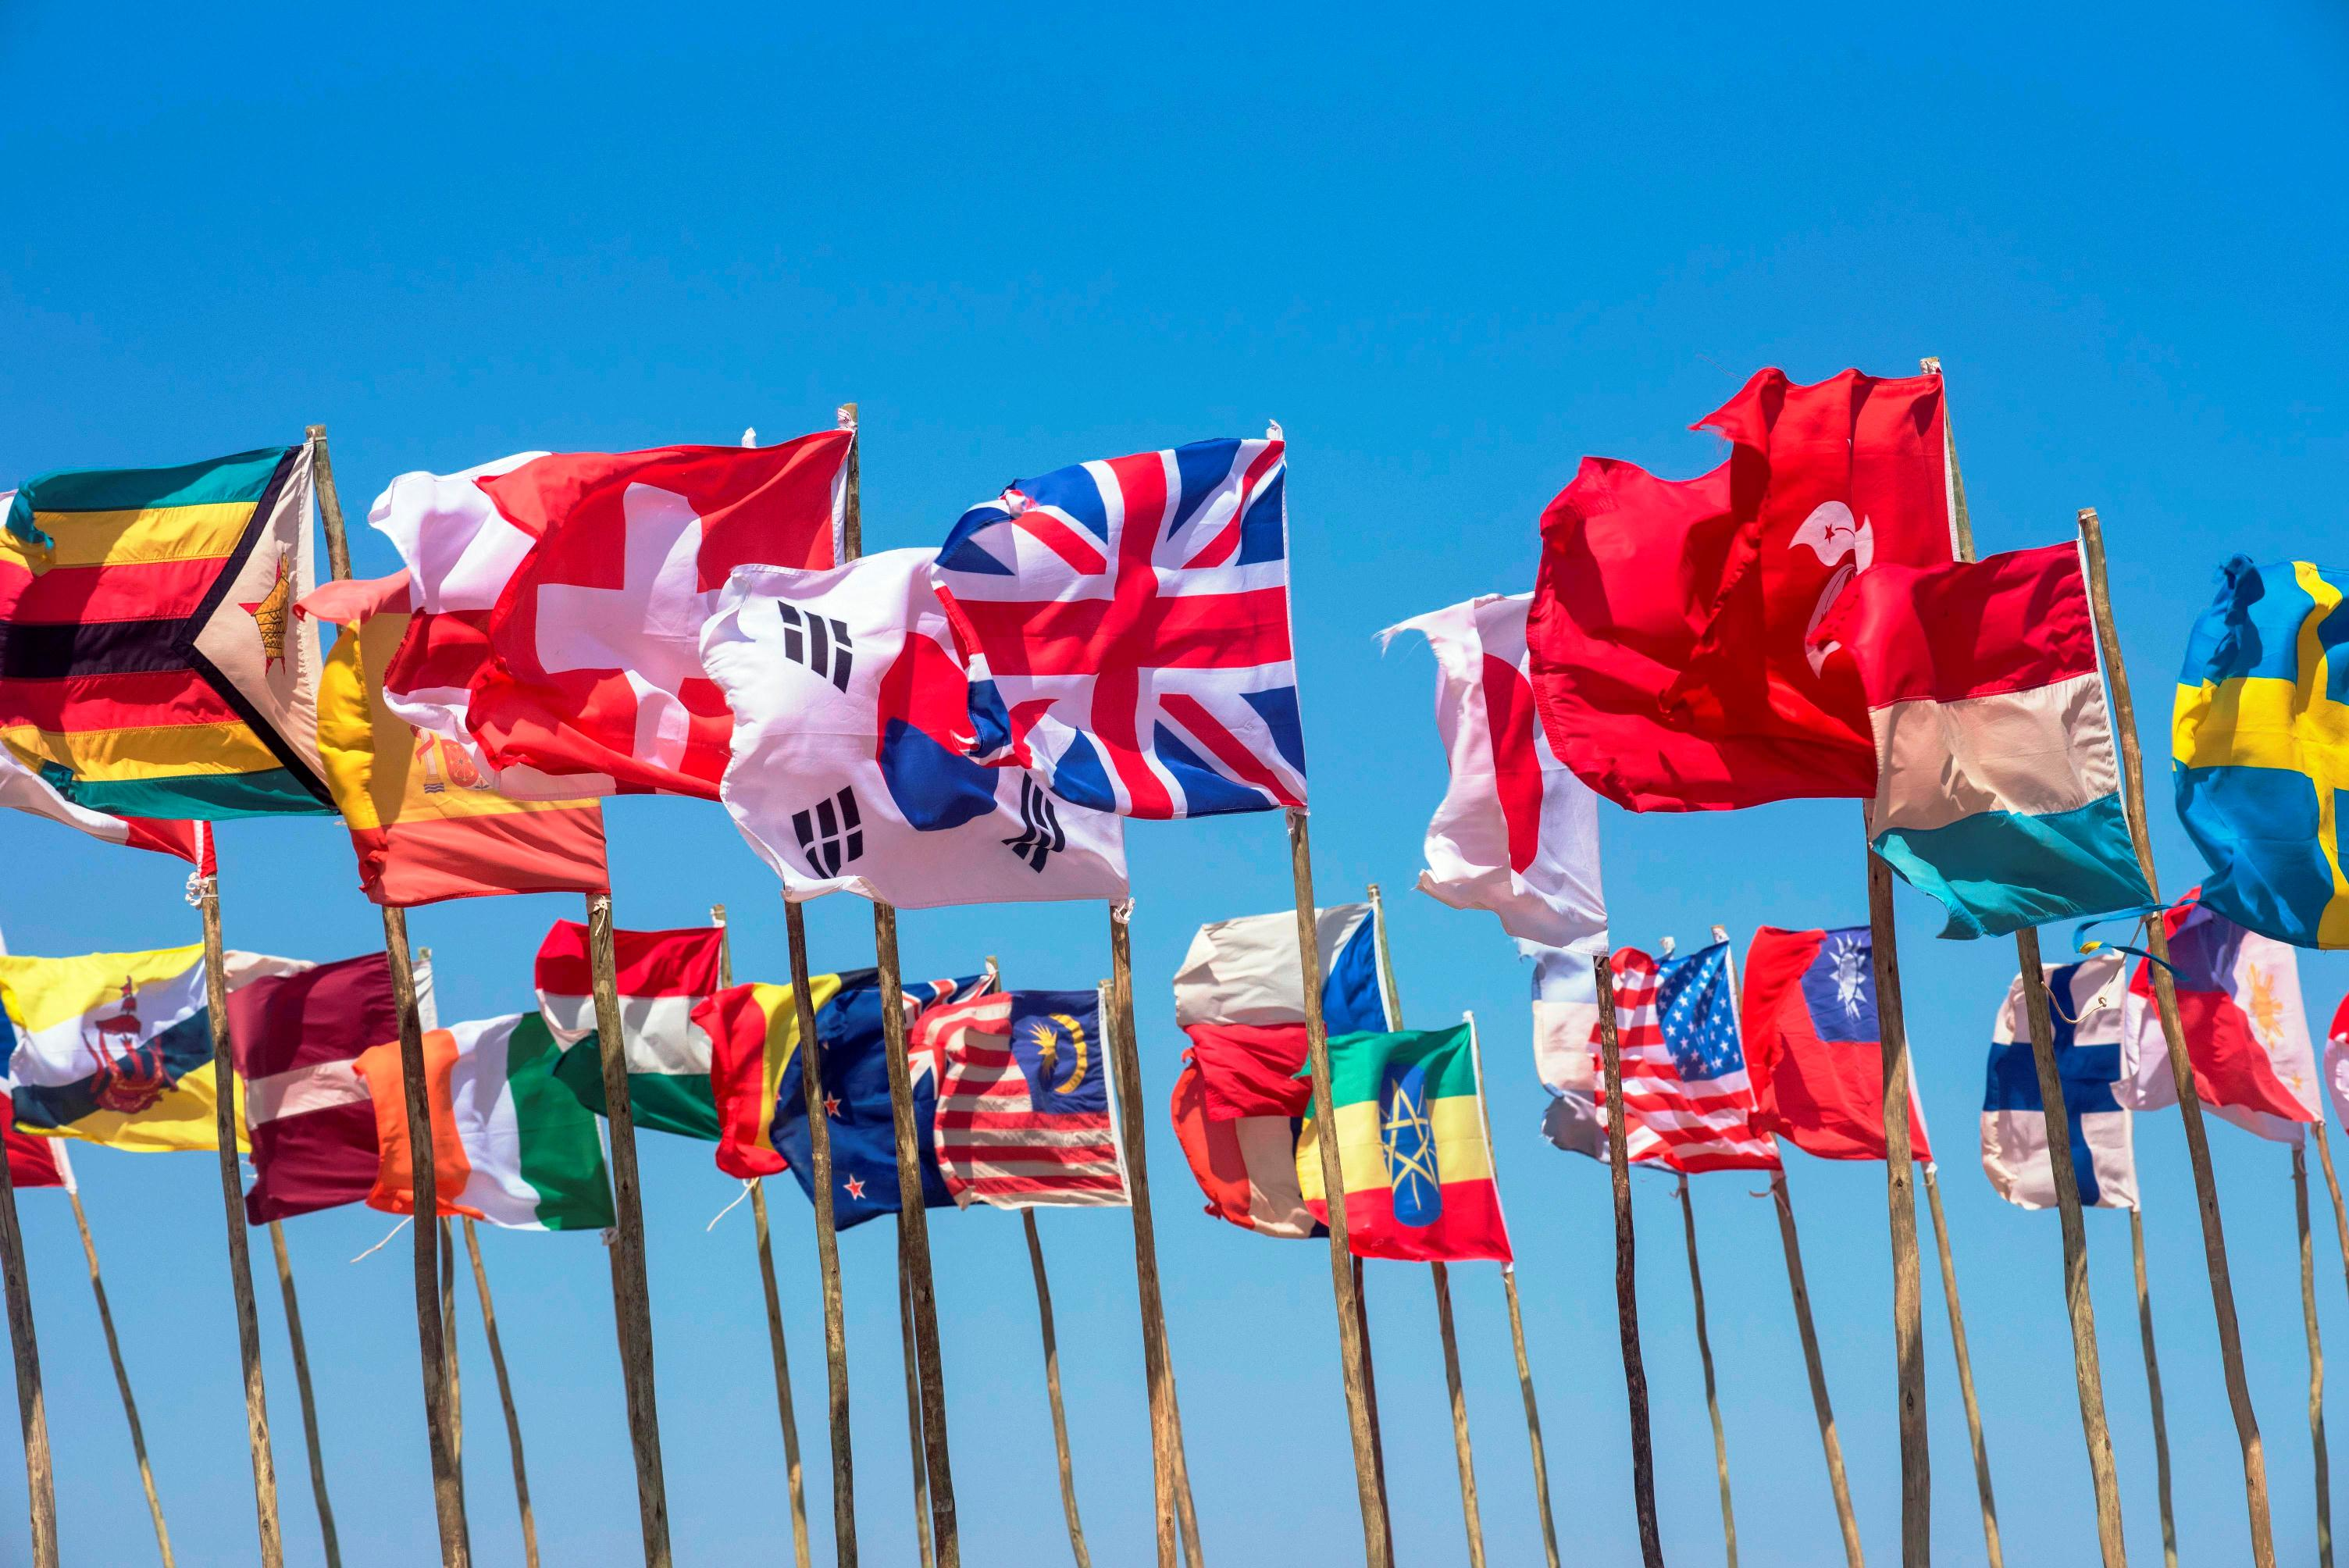 More 40 countries are represented at each race